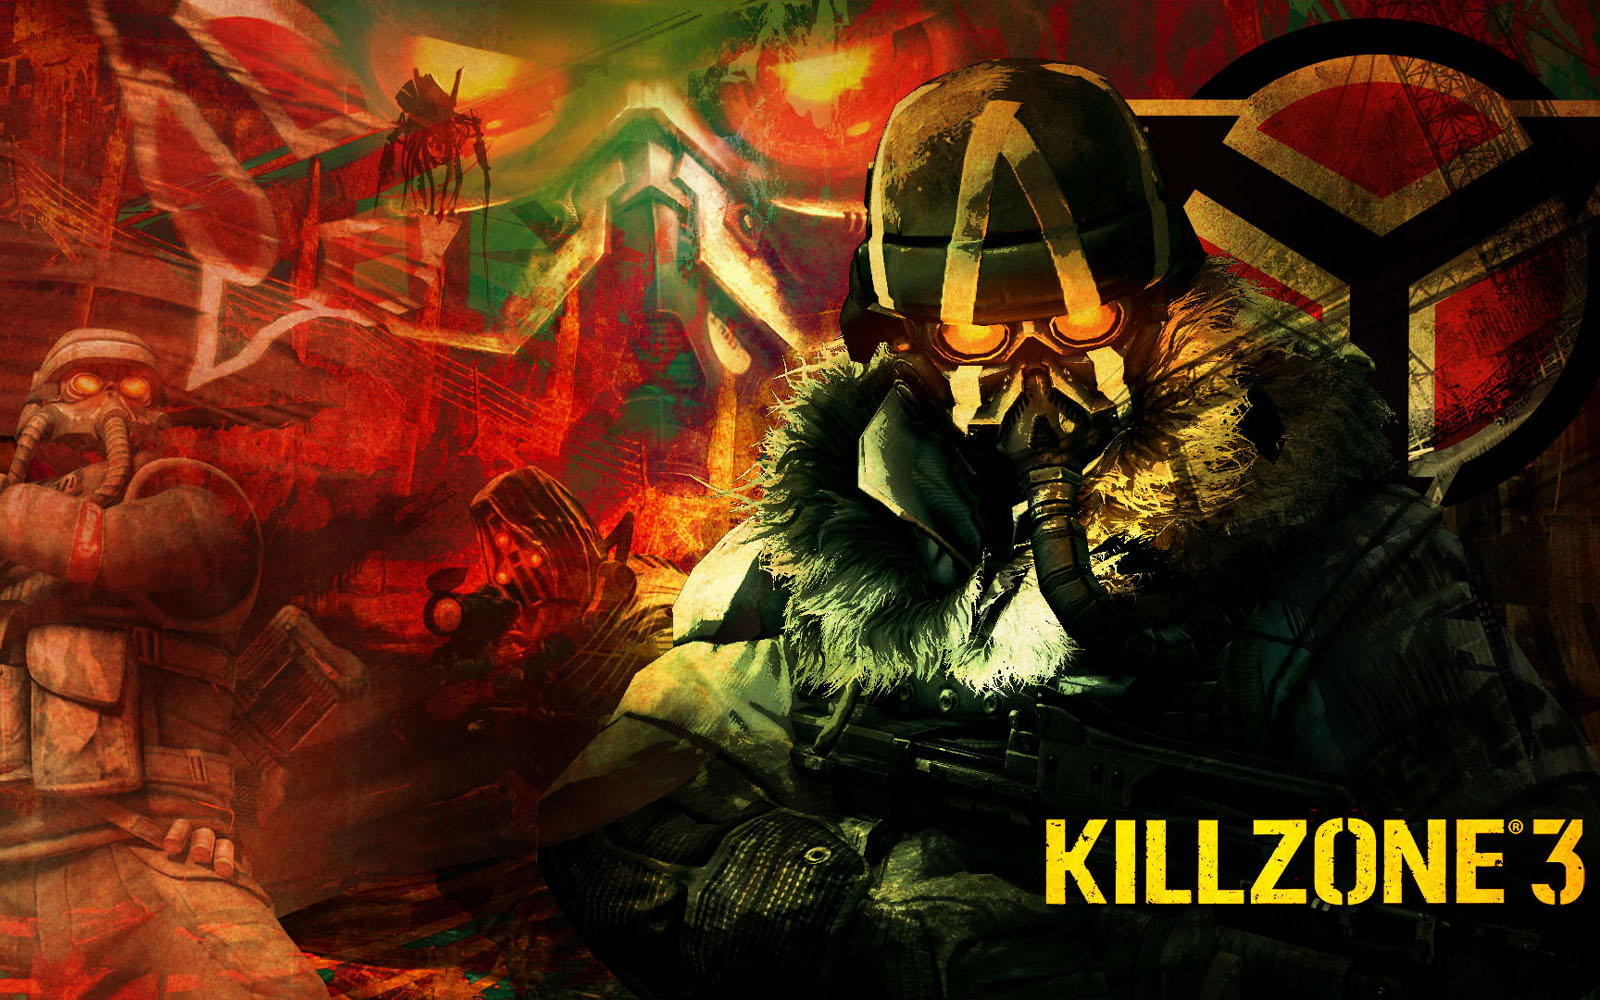 wallpapers killzone 3 game wallpapers. Black Bedroom Furniture Sets. Home Design Ideas